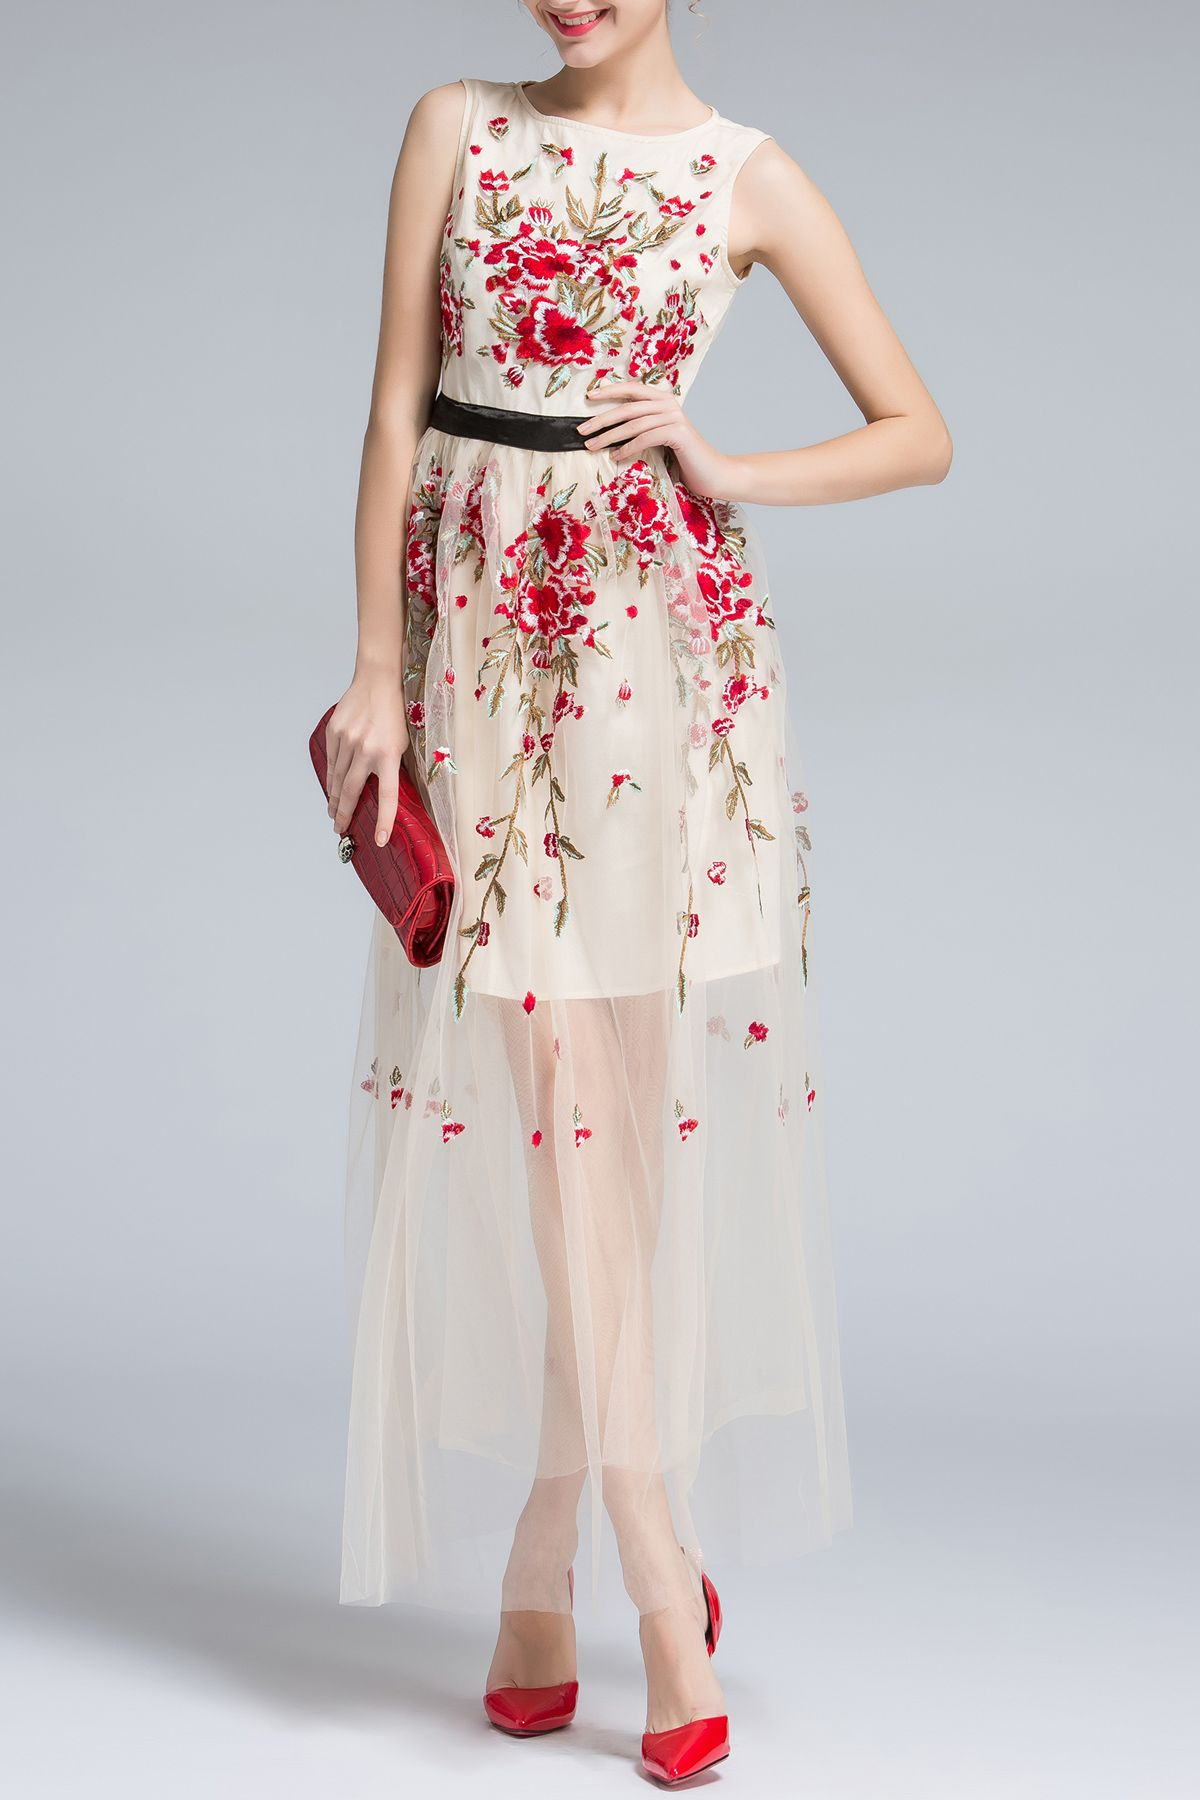 Floral Embroidery Sleeveless Voile Maxi Dress Designer Dresses Online Embroidered Maxi Dress Maxi Dress